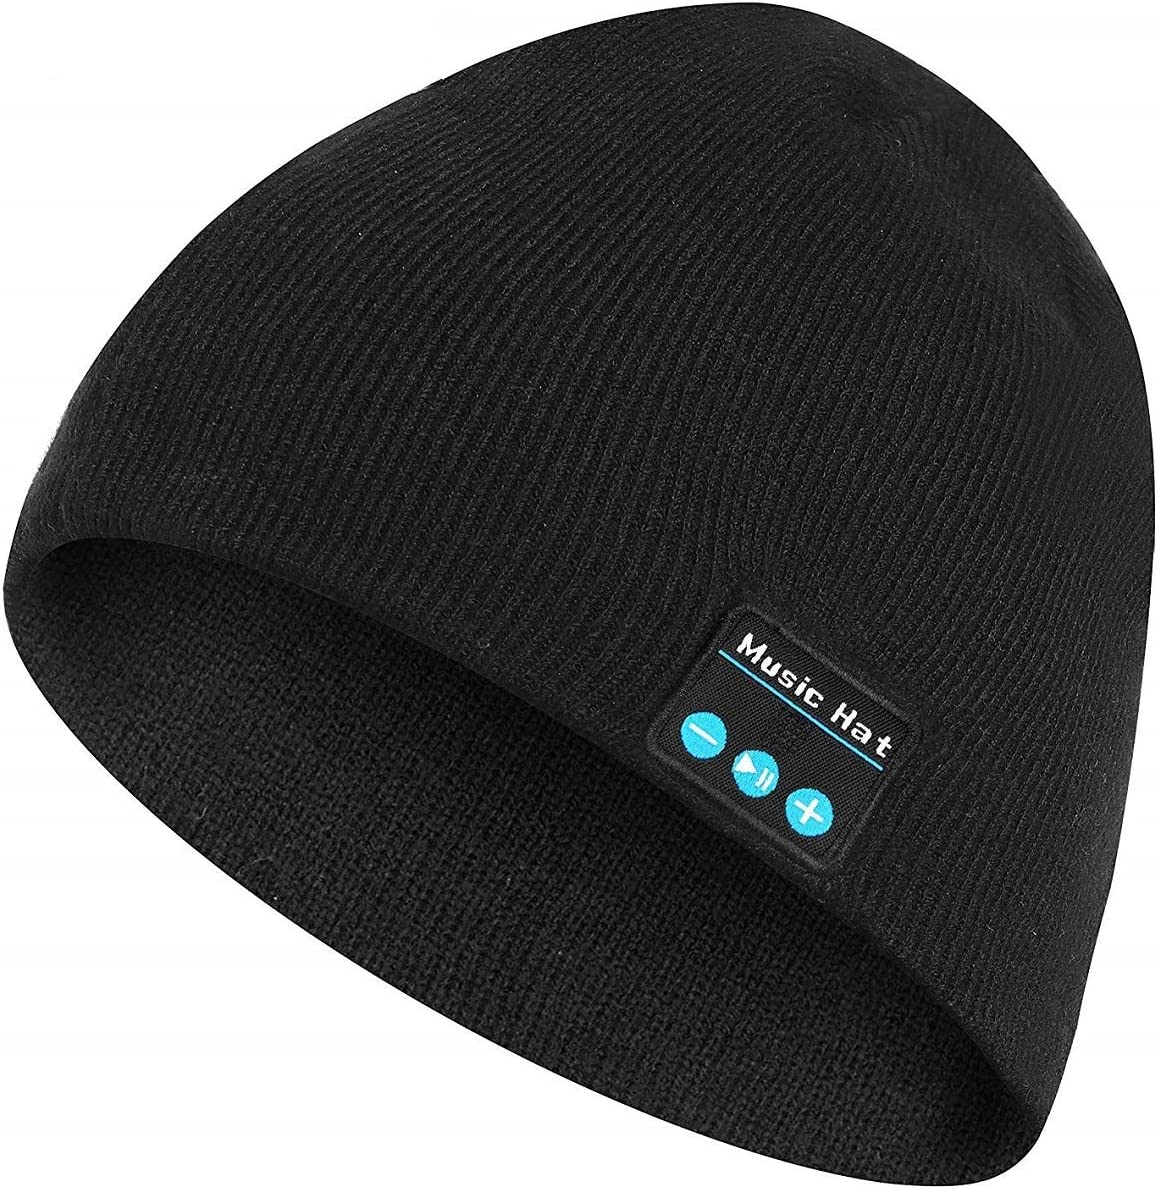 BALANSOHO Bluetooth Beanie Hat Wireless Musical Knit Cap Washable with Stereo Speakers Mic Fit for Outdoor Sports, Awesome Christmas Tech Gifts for Women Men Teen Boys Girls